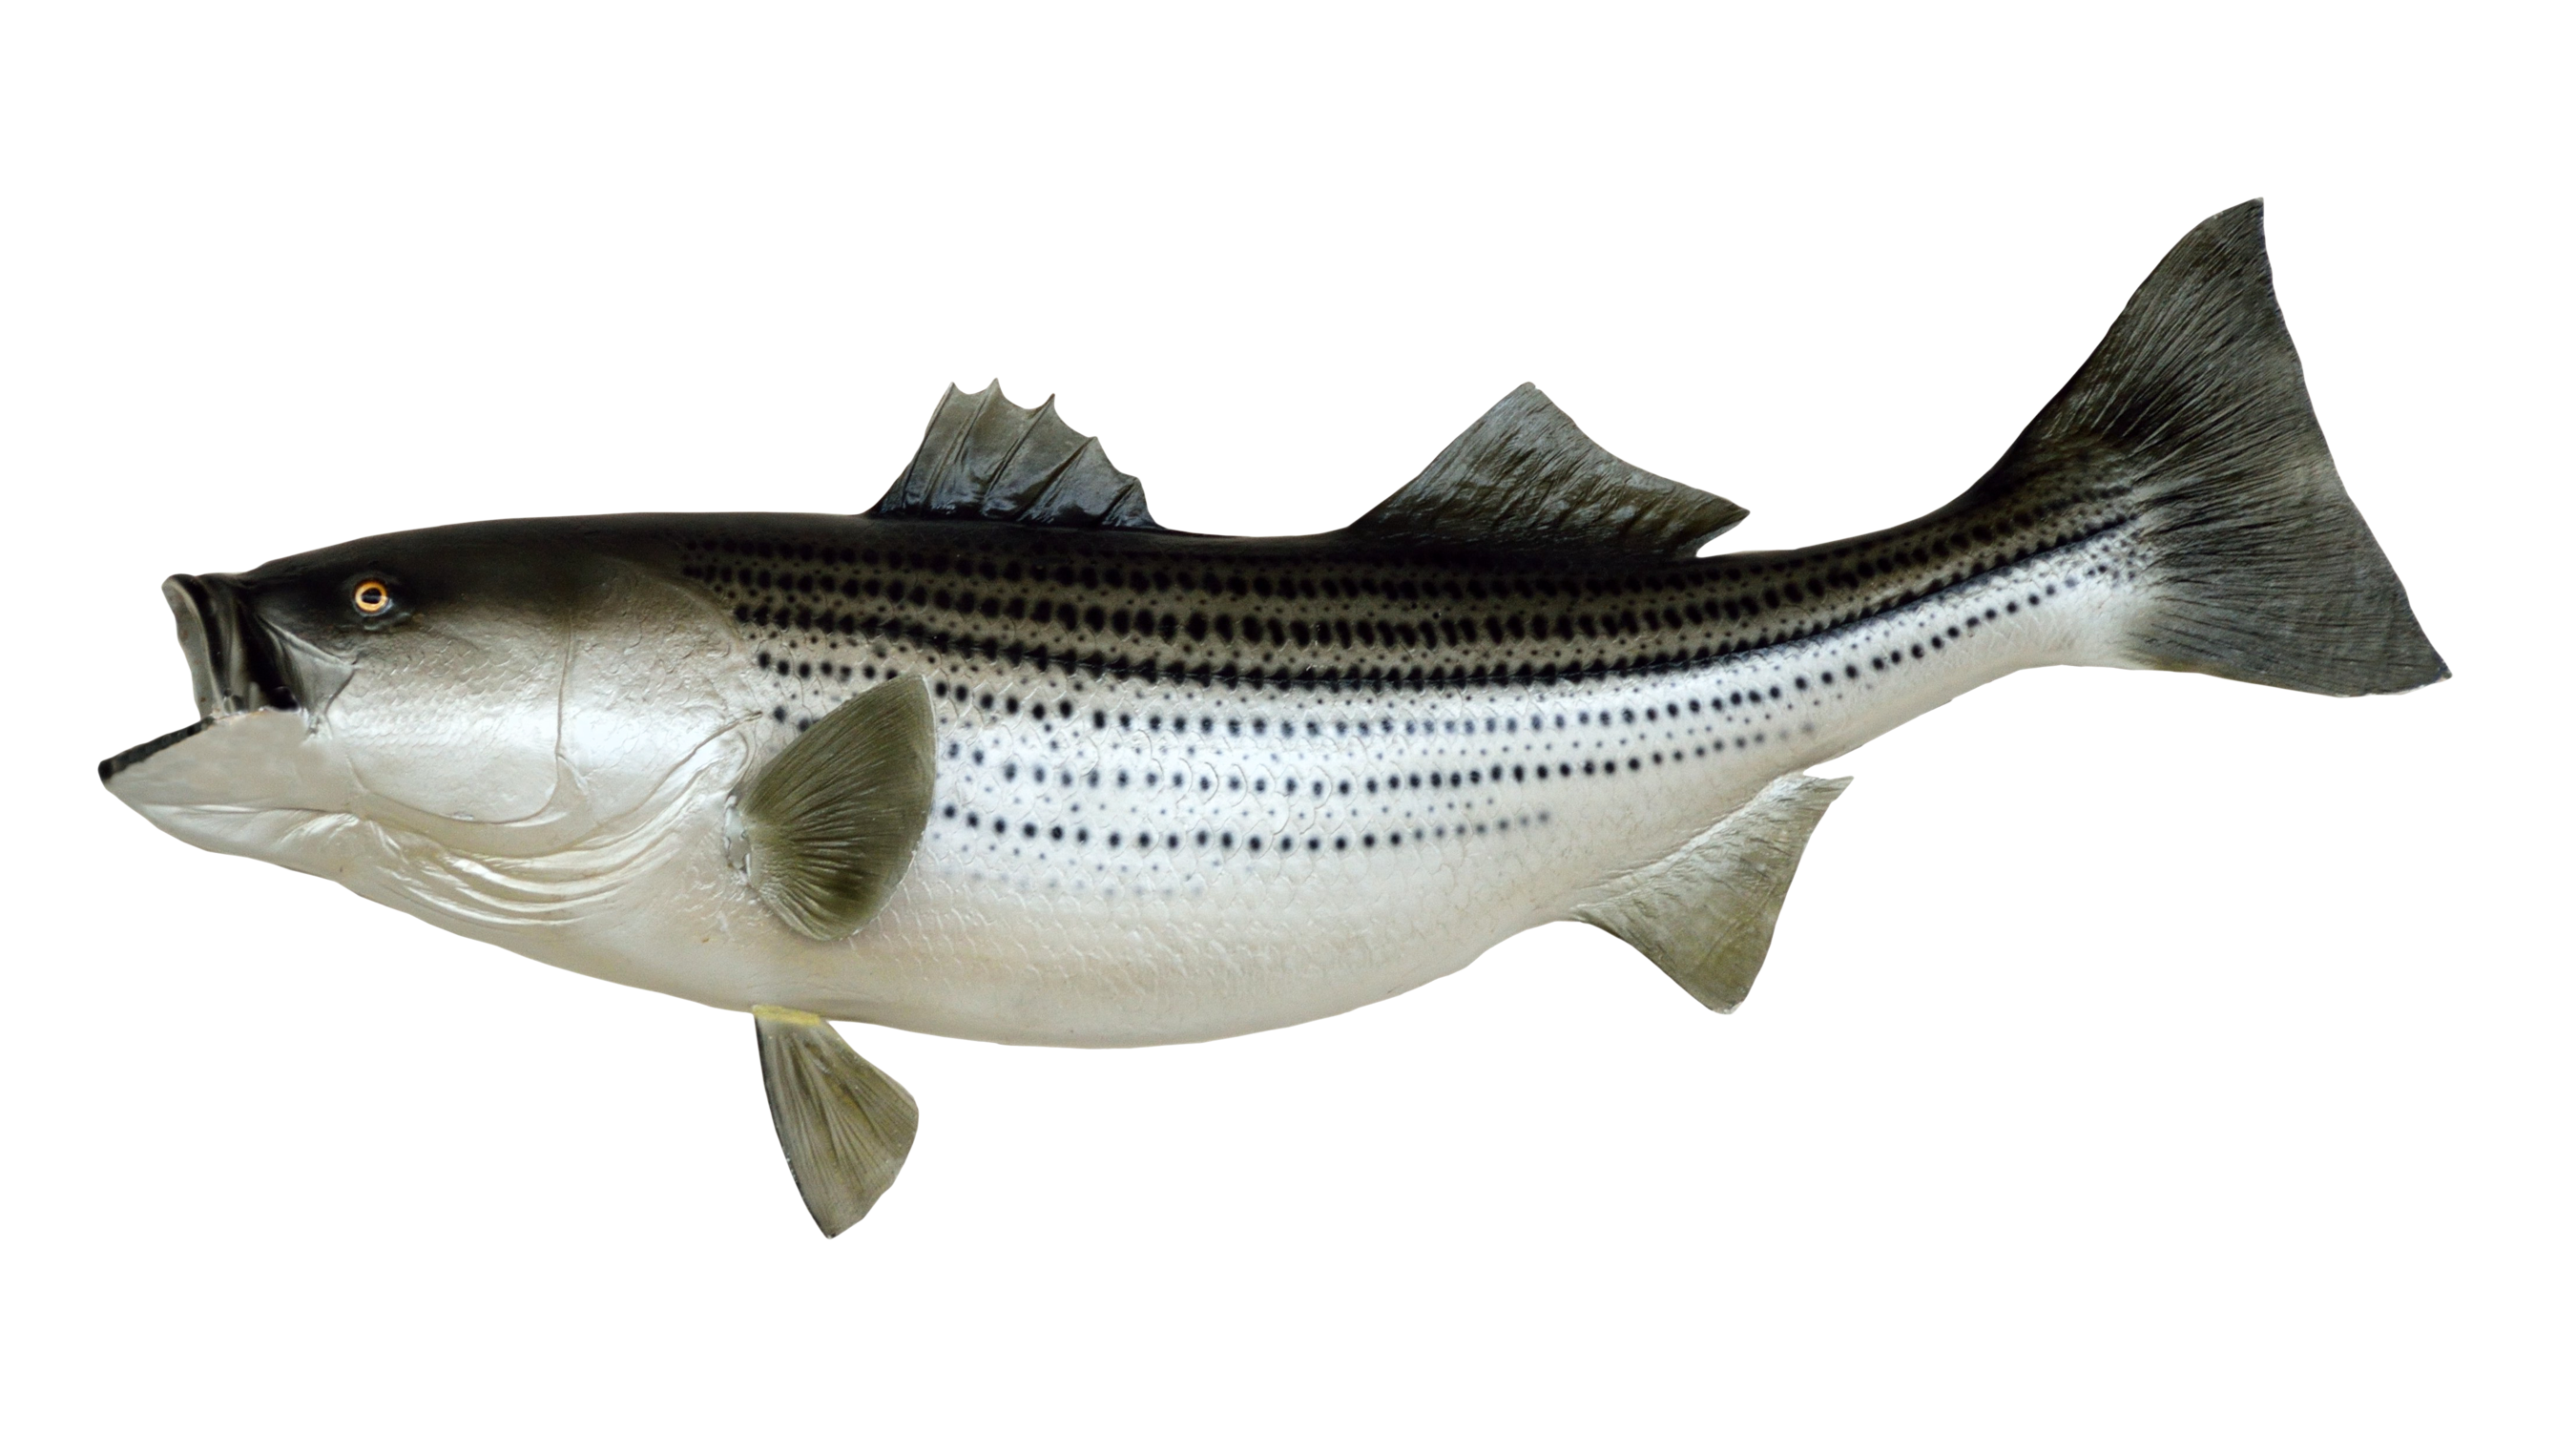 Fish salmon with water png. Best images of image